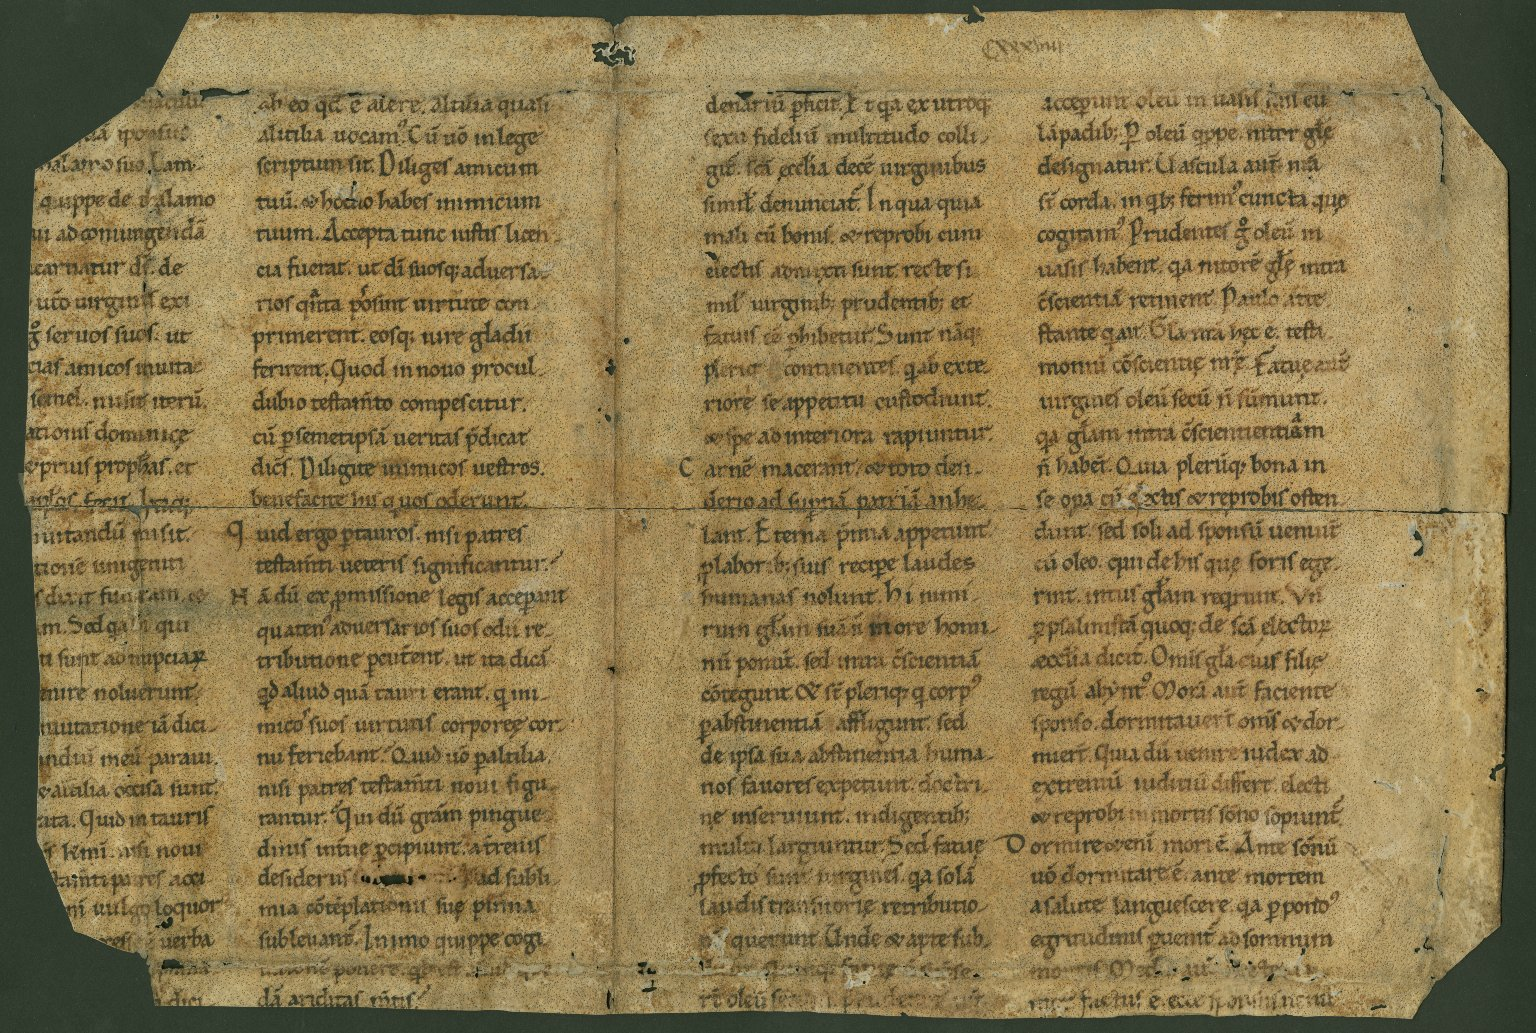 MS 127, recto